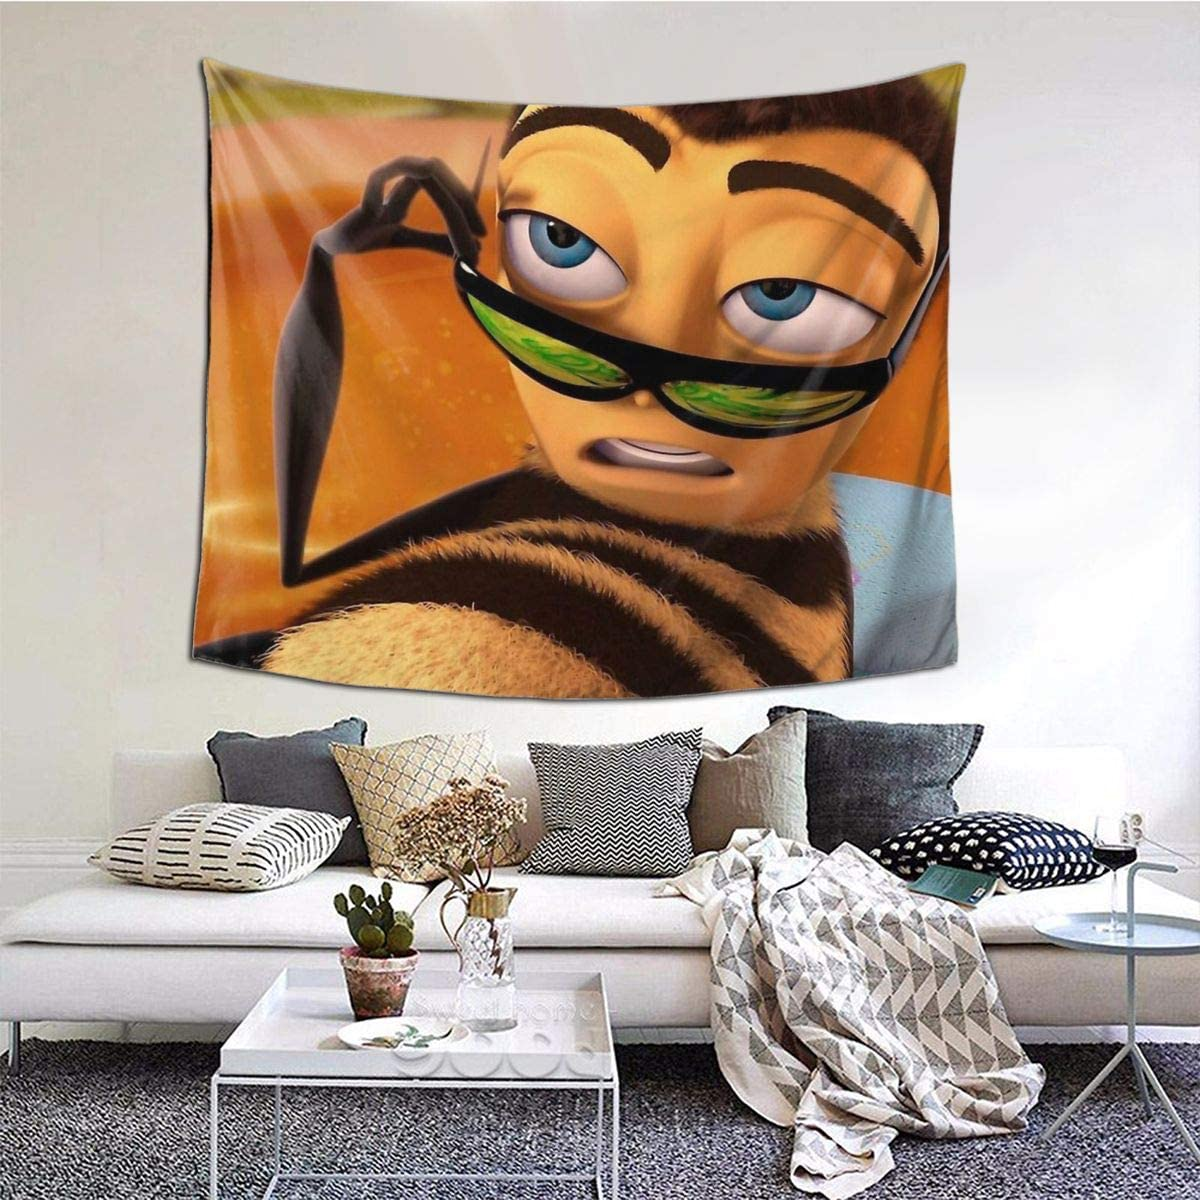 Barry Benson is Hot Af - Bee Movie Meme Living Room Home Art Decor Tapestry Bedroom Dorm Wall Hanging 60 X 51 Inch